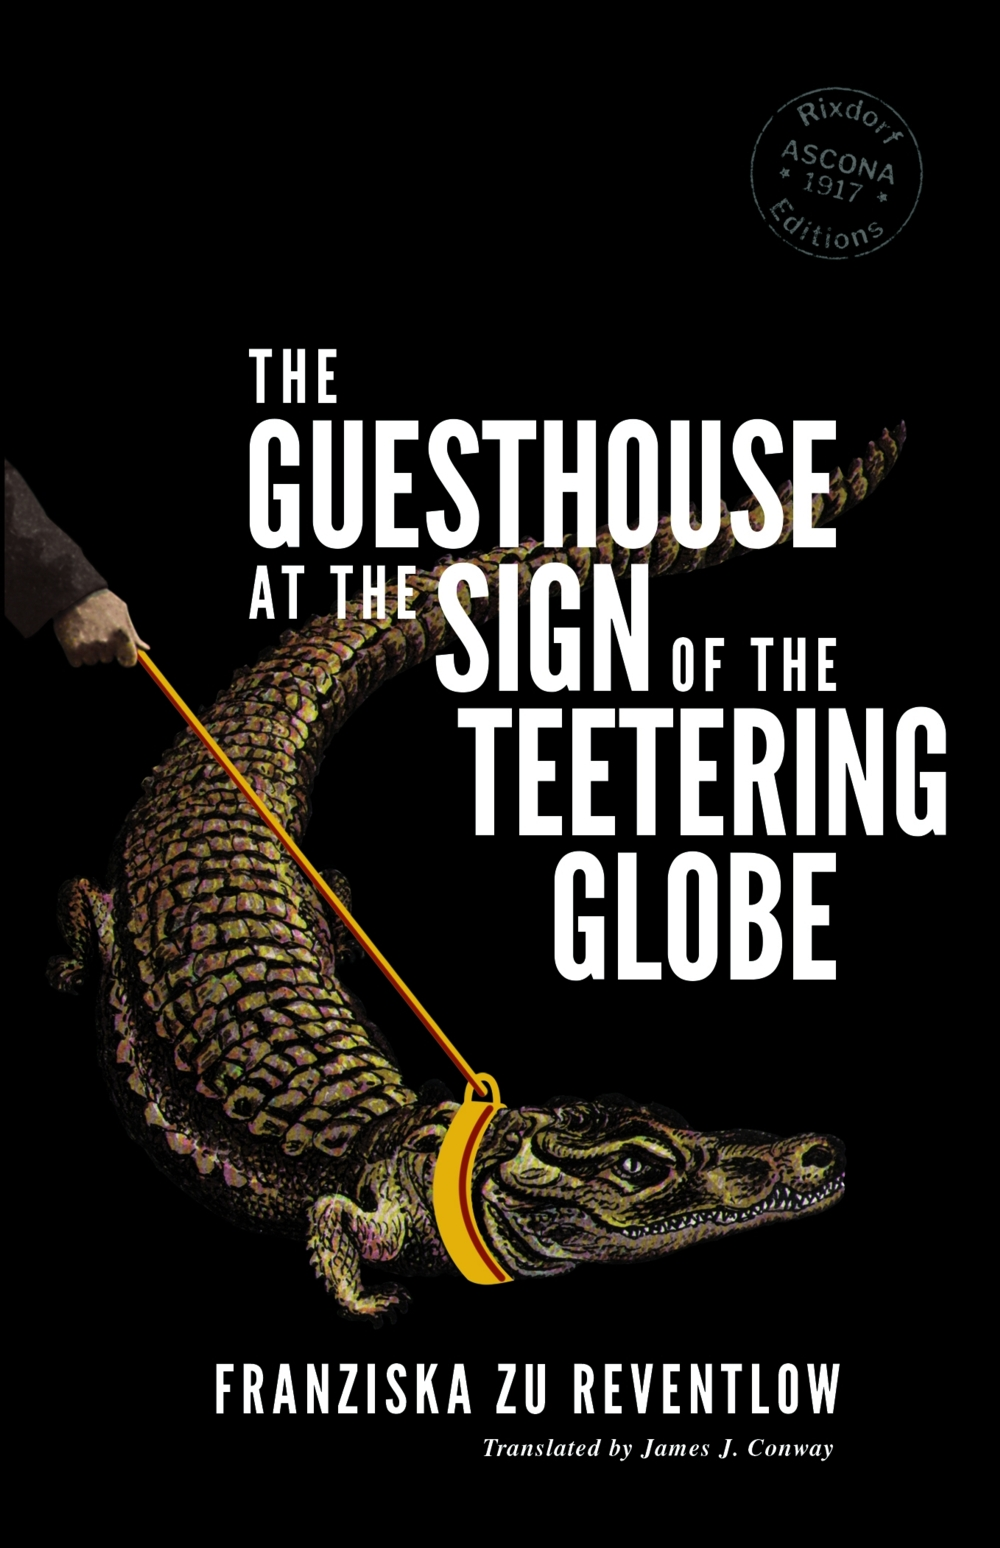 The Guesthouse at the Sign of the Teetering Globe